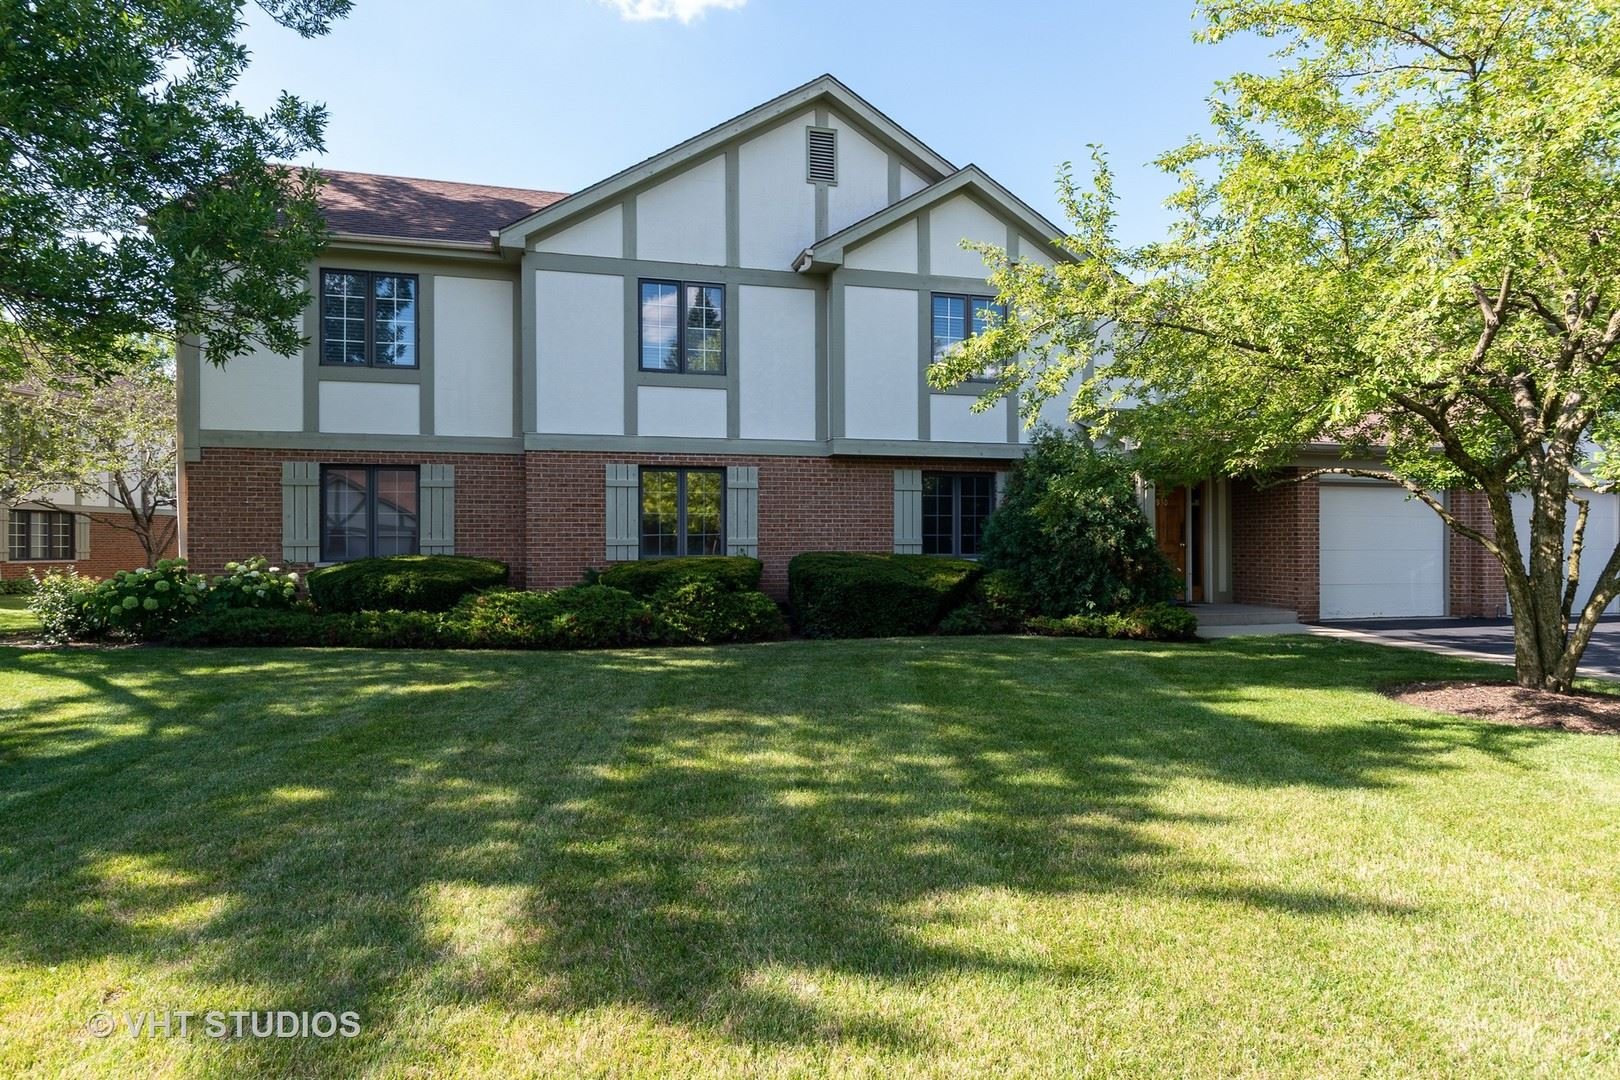 930 Ivy Lane #B, Deerfield, IL 60015 - #: 10801688